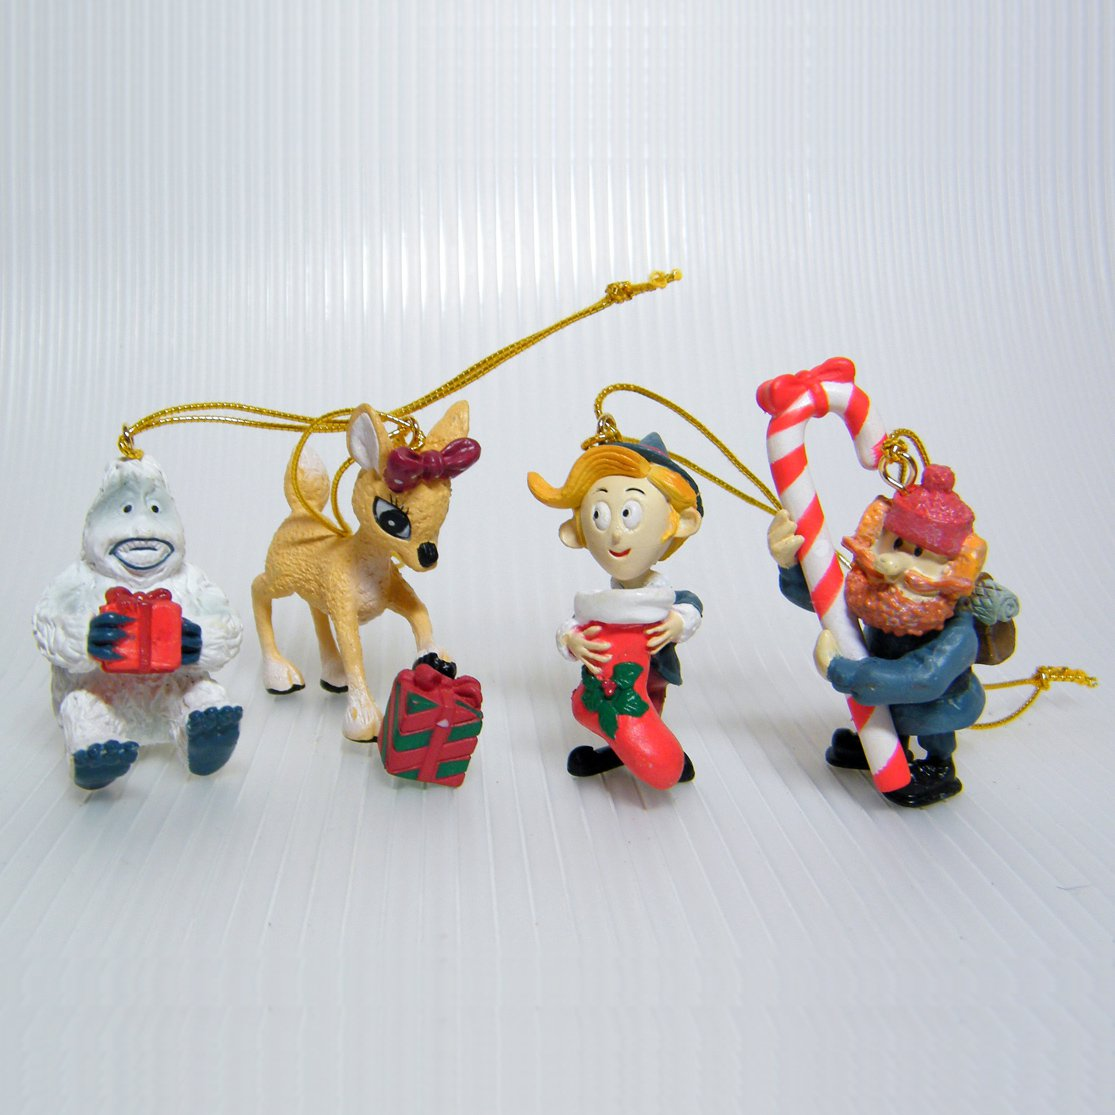 Miniature RUDOLPH The Red-Nosed Reindeer Ornaments Misfit Toys Movie Figures